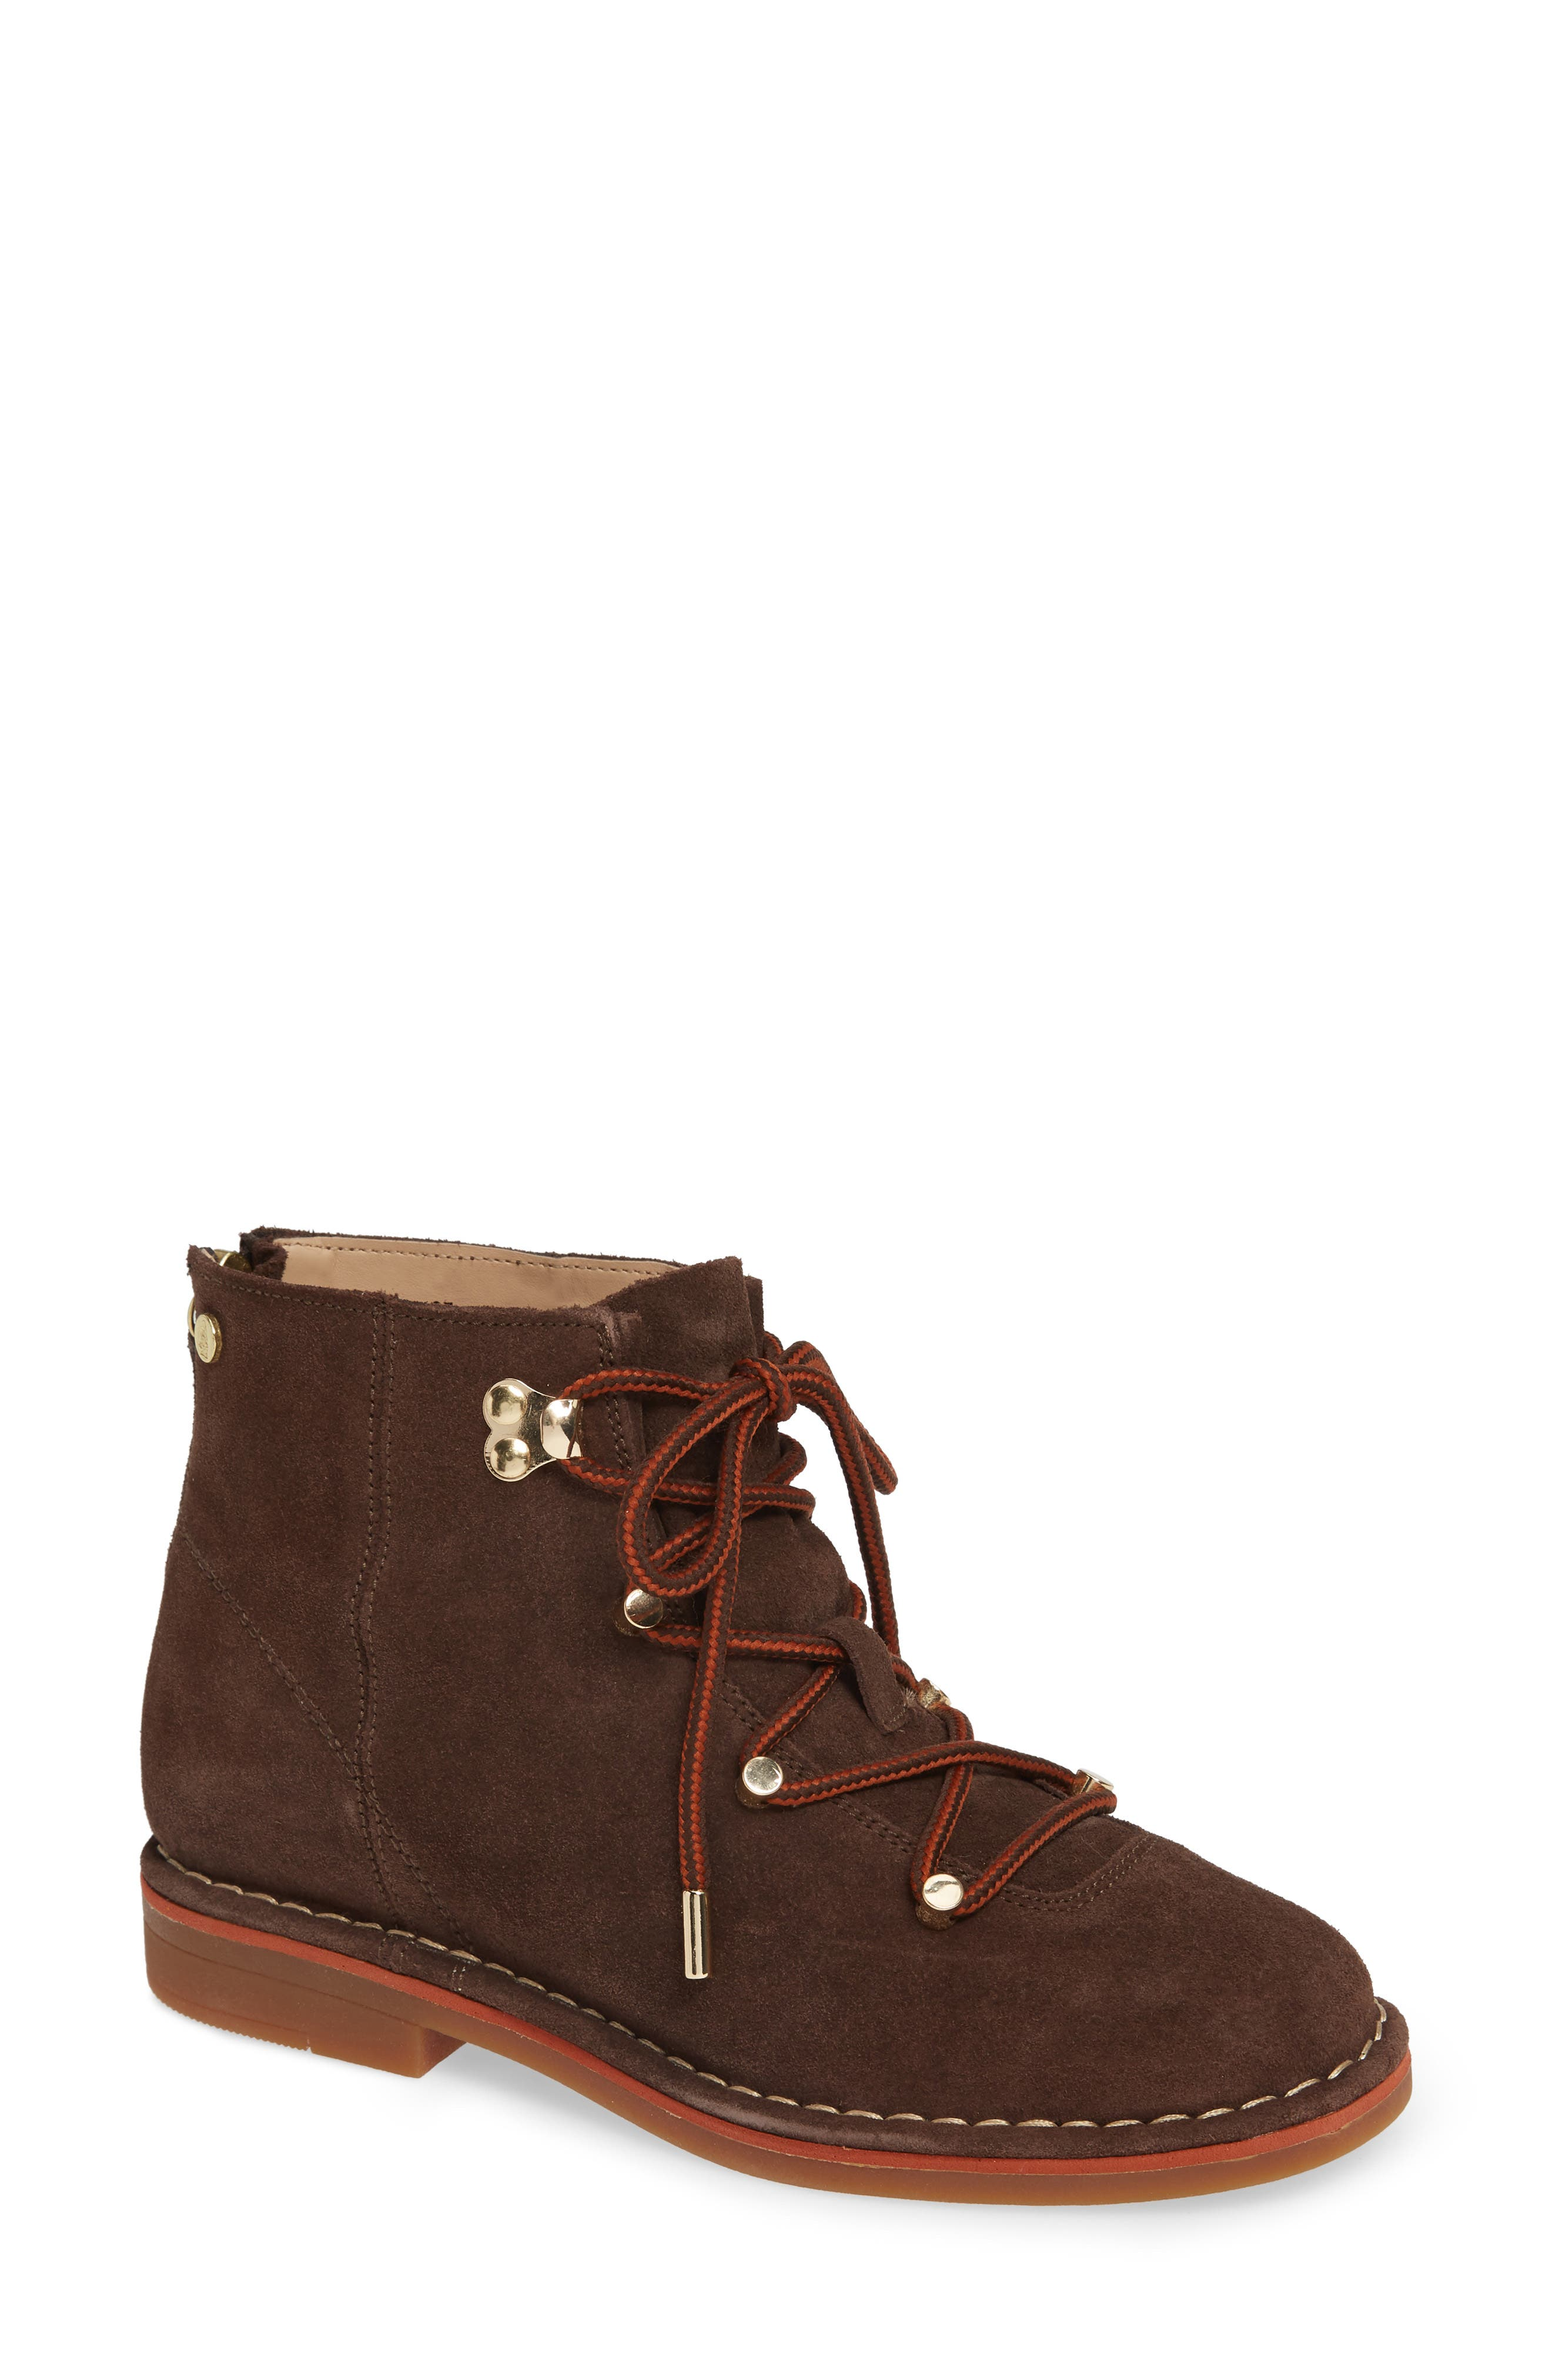 Hush Puppies Catelyn Hiker Bootie, Brown